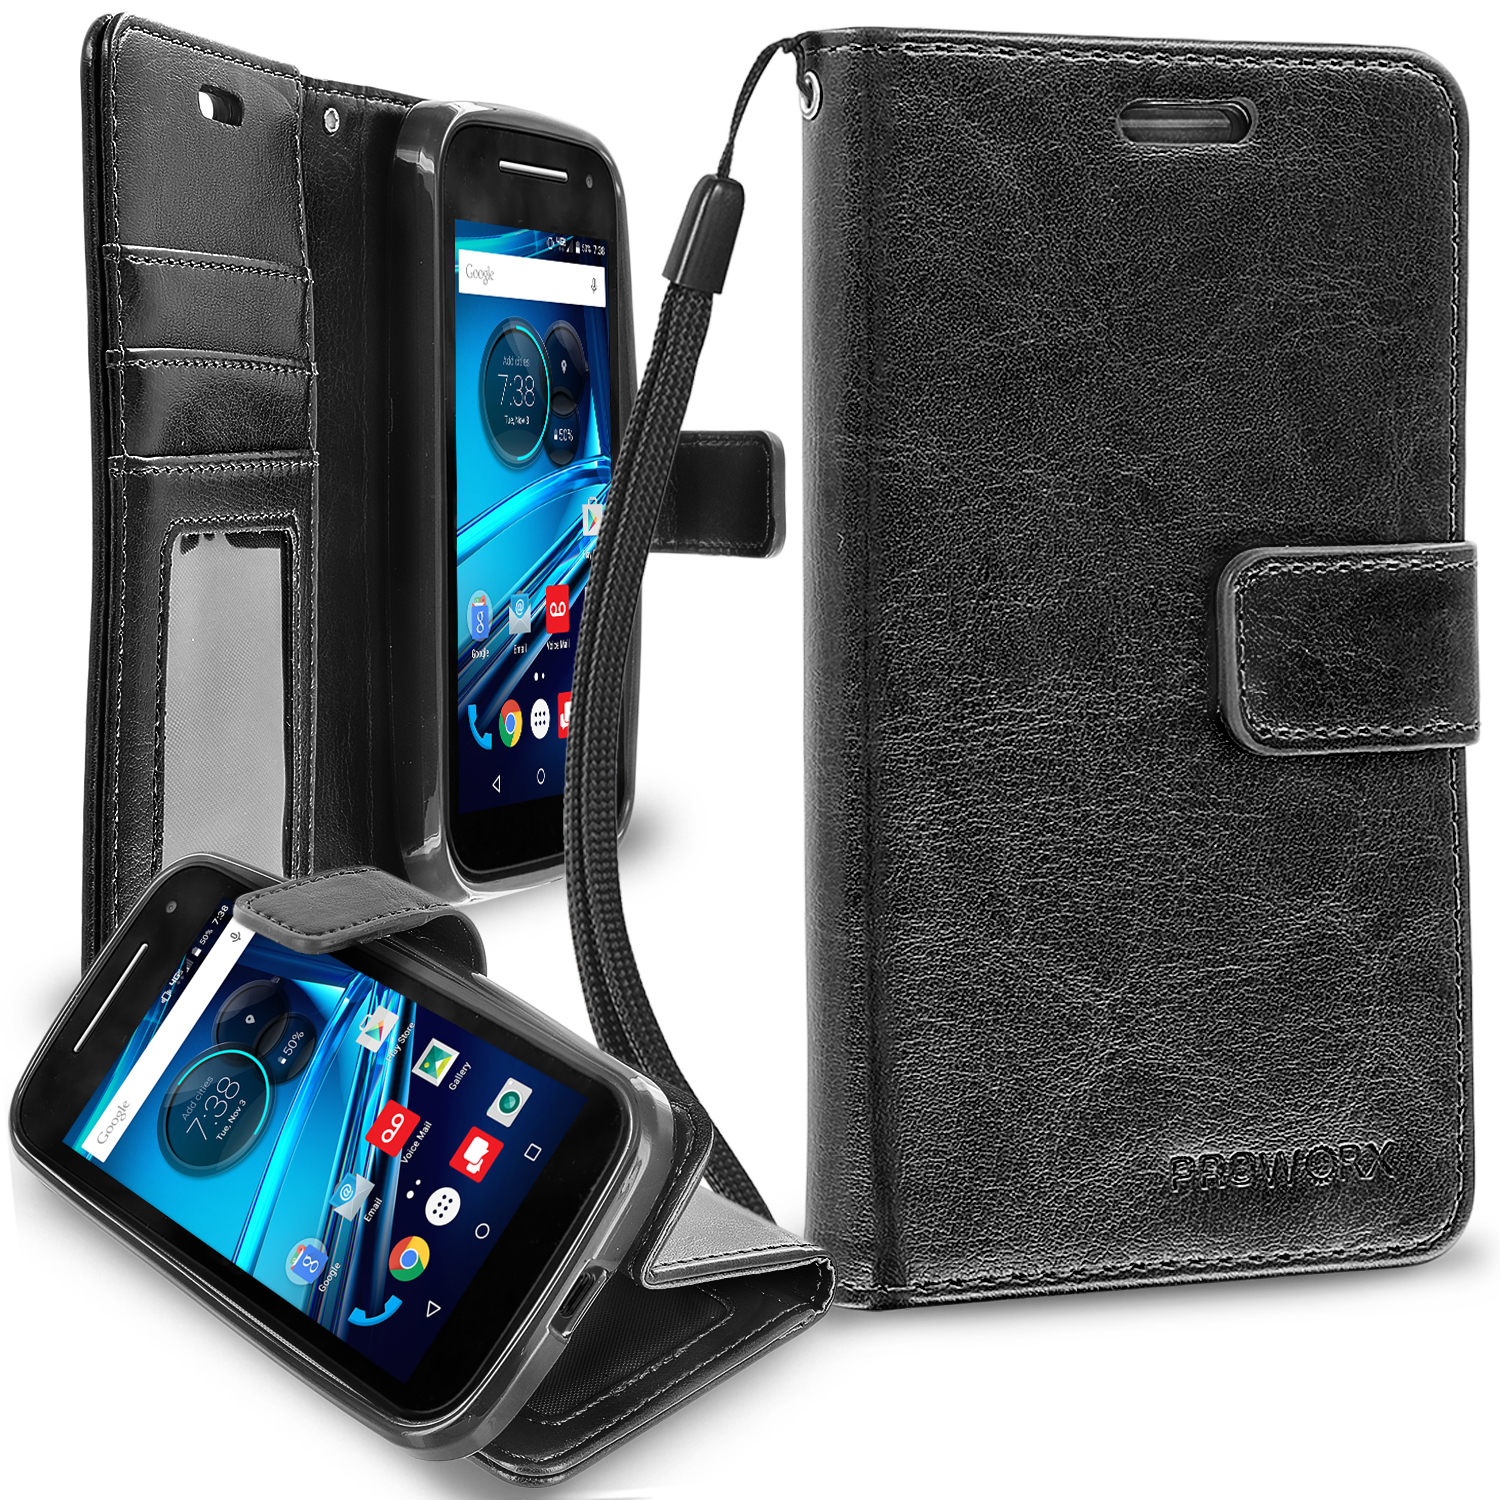 Motorola Moto E LTE 2nd Generation Black ProWorx Wallet Case Luxury PU Leather Case Cover With Card Slots & Stand